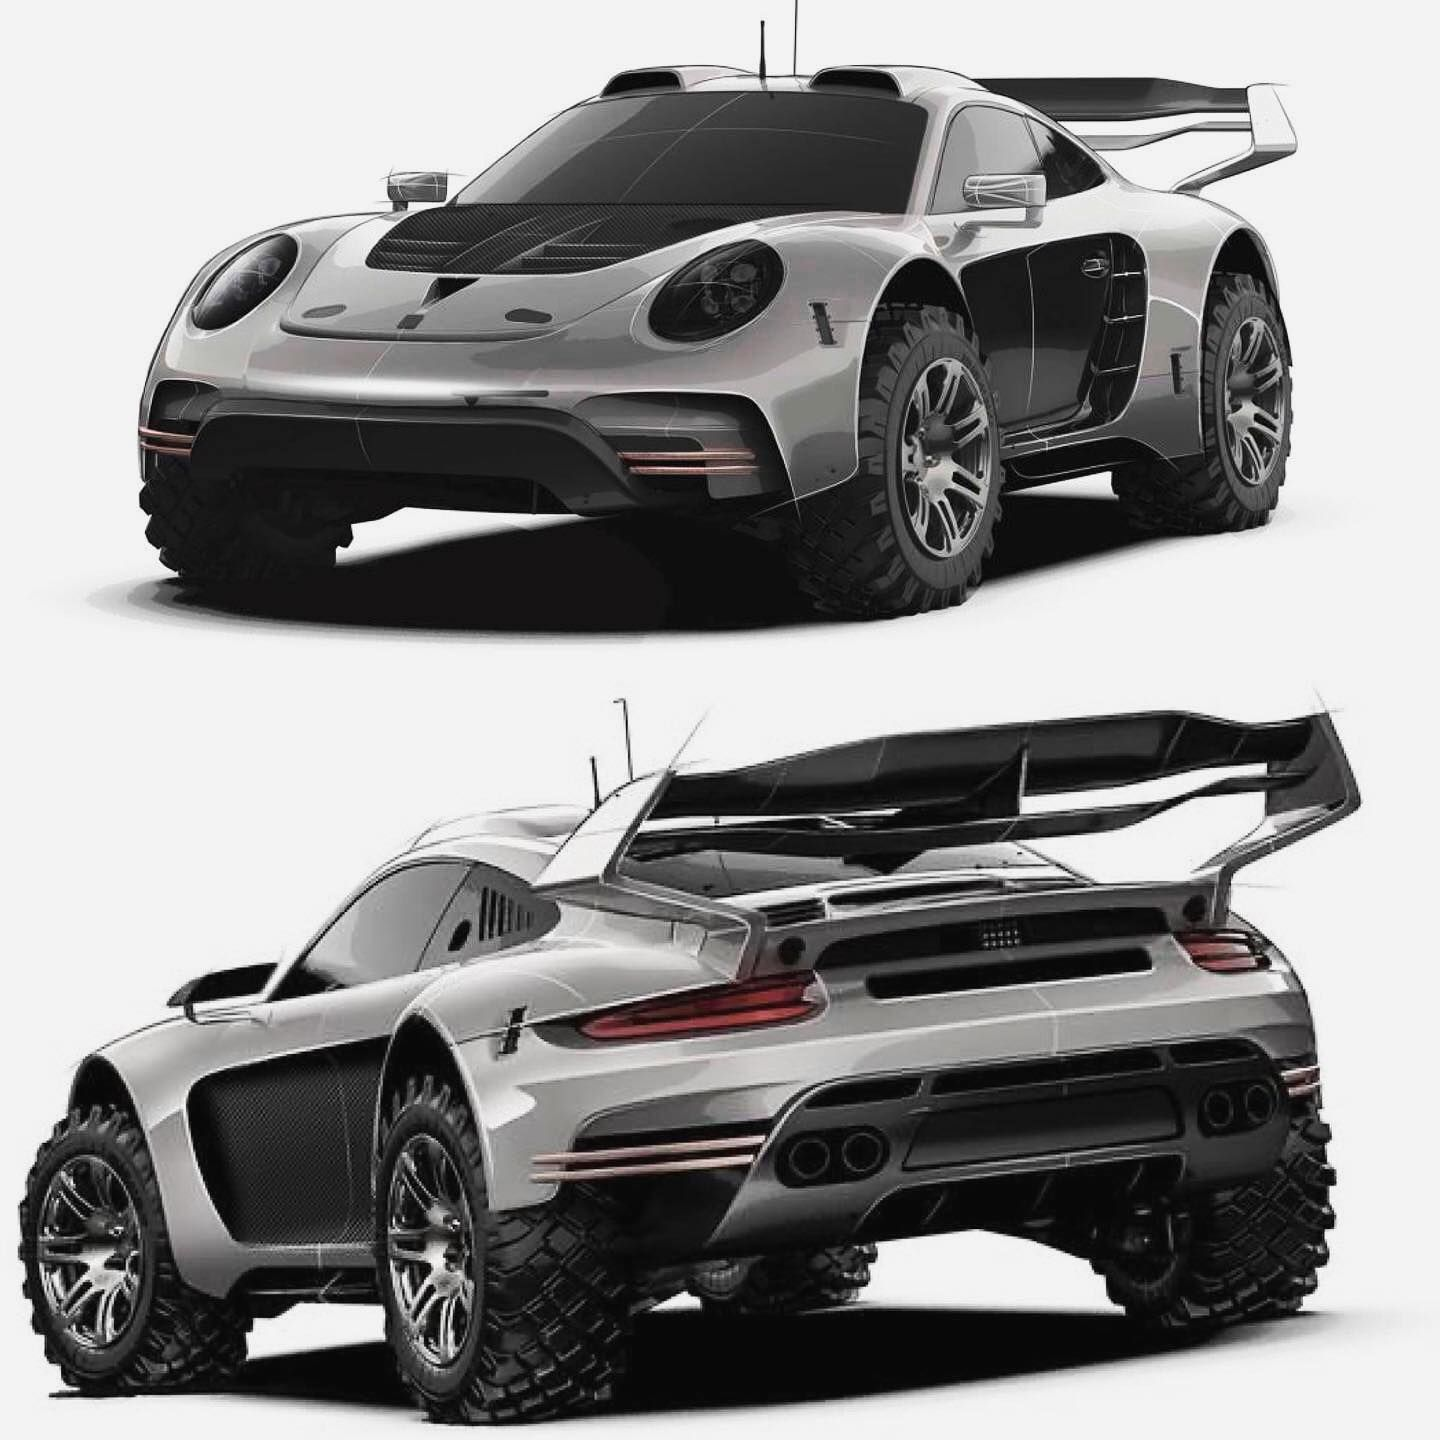 A Porsche To Rule The Safari Rally The Gemballa Avalanche What Do Ya Say About This Follow Vroomheadofficial For More Porsc In 2020 Bike News Car Sports Car